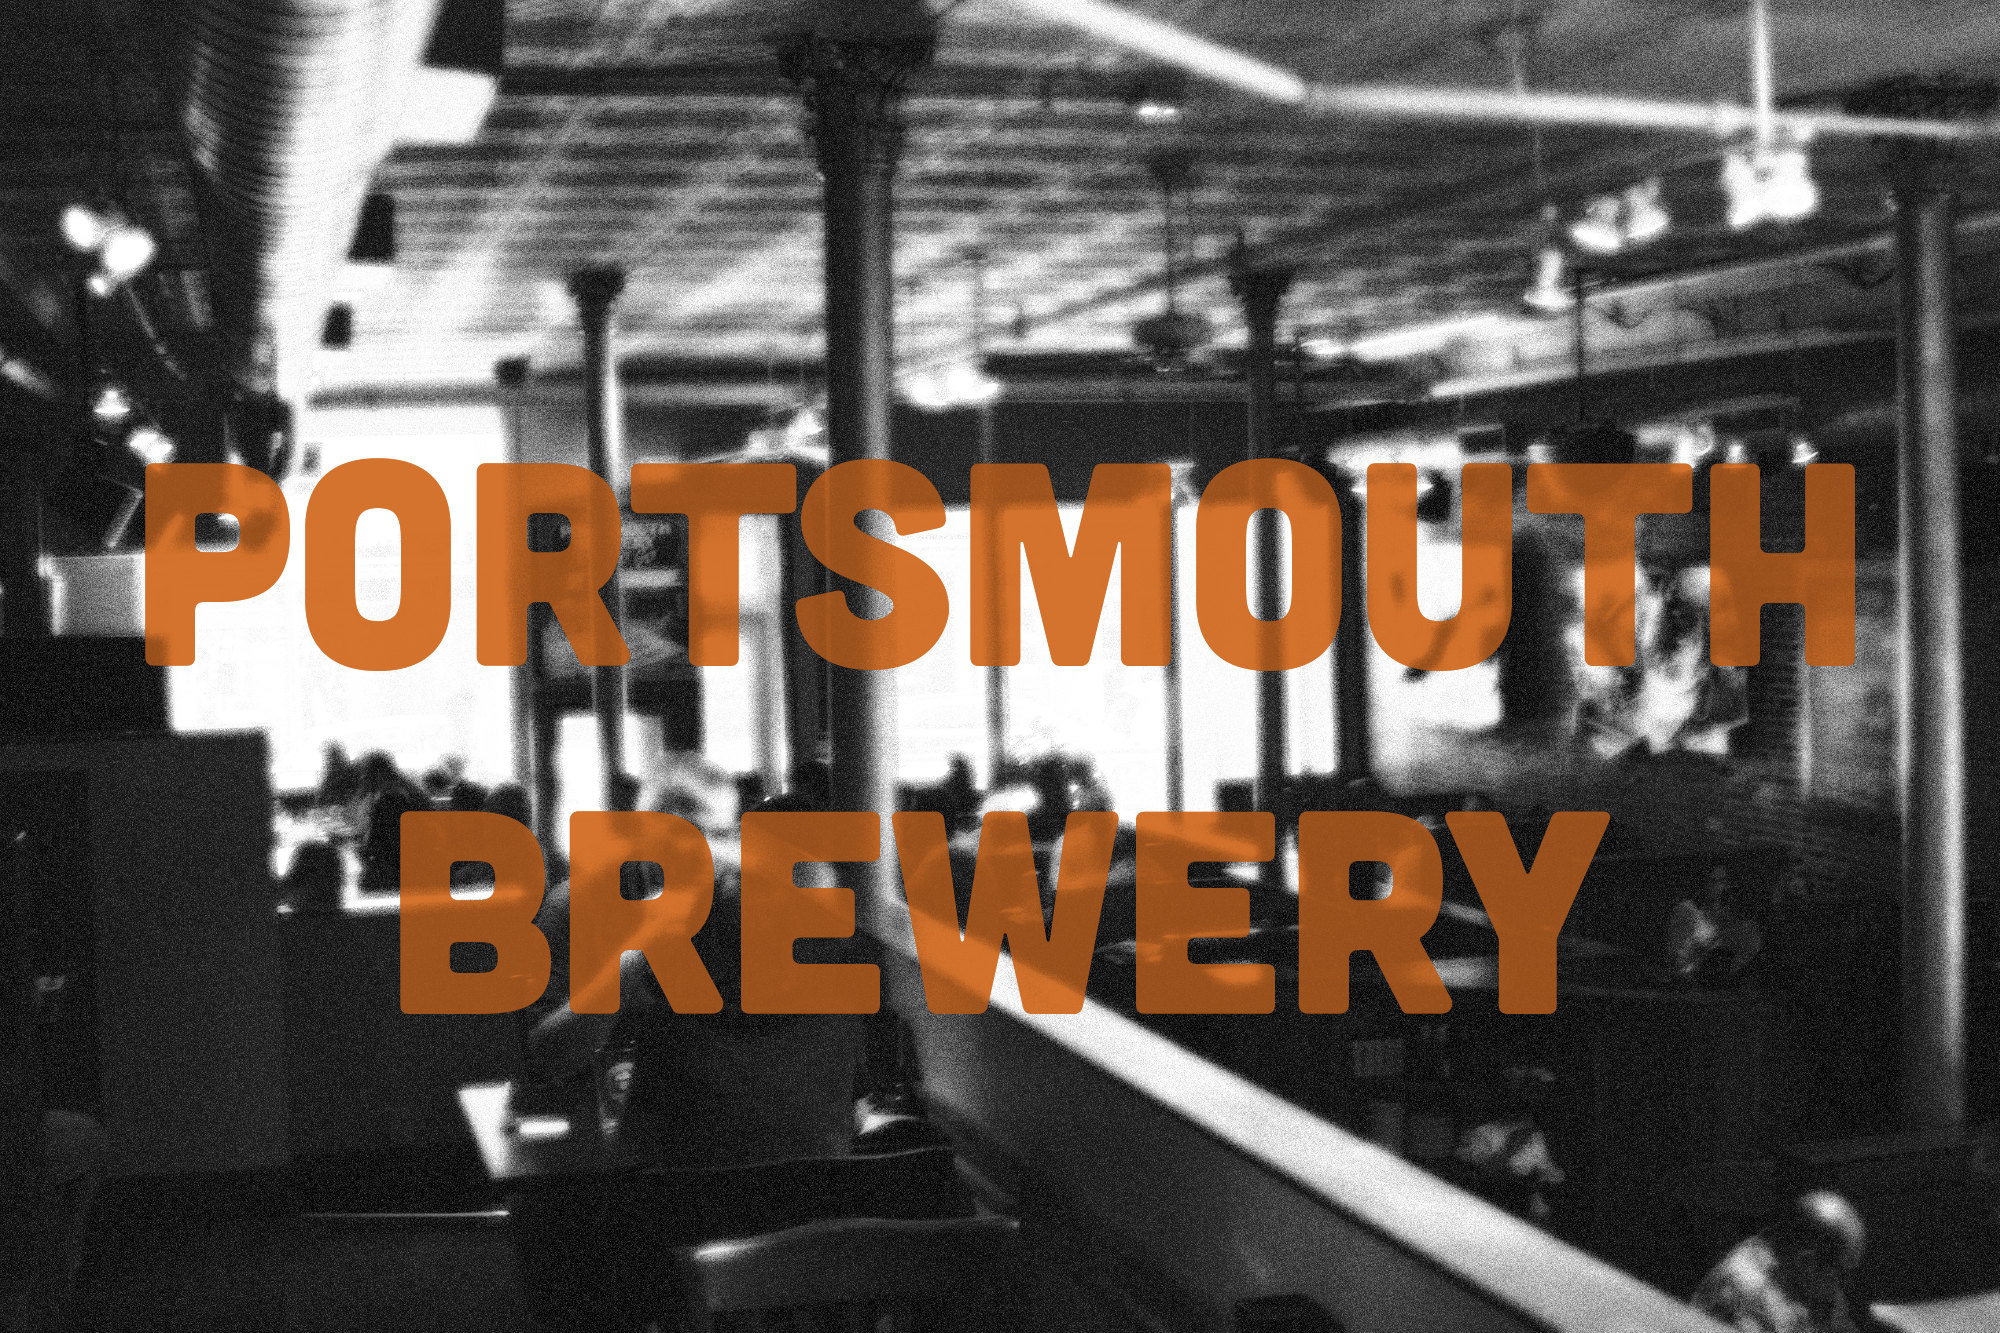 portsmouthbrew cover final.png